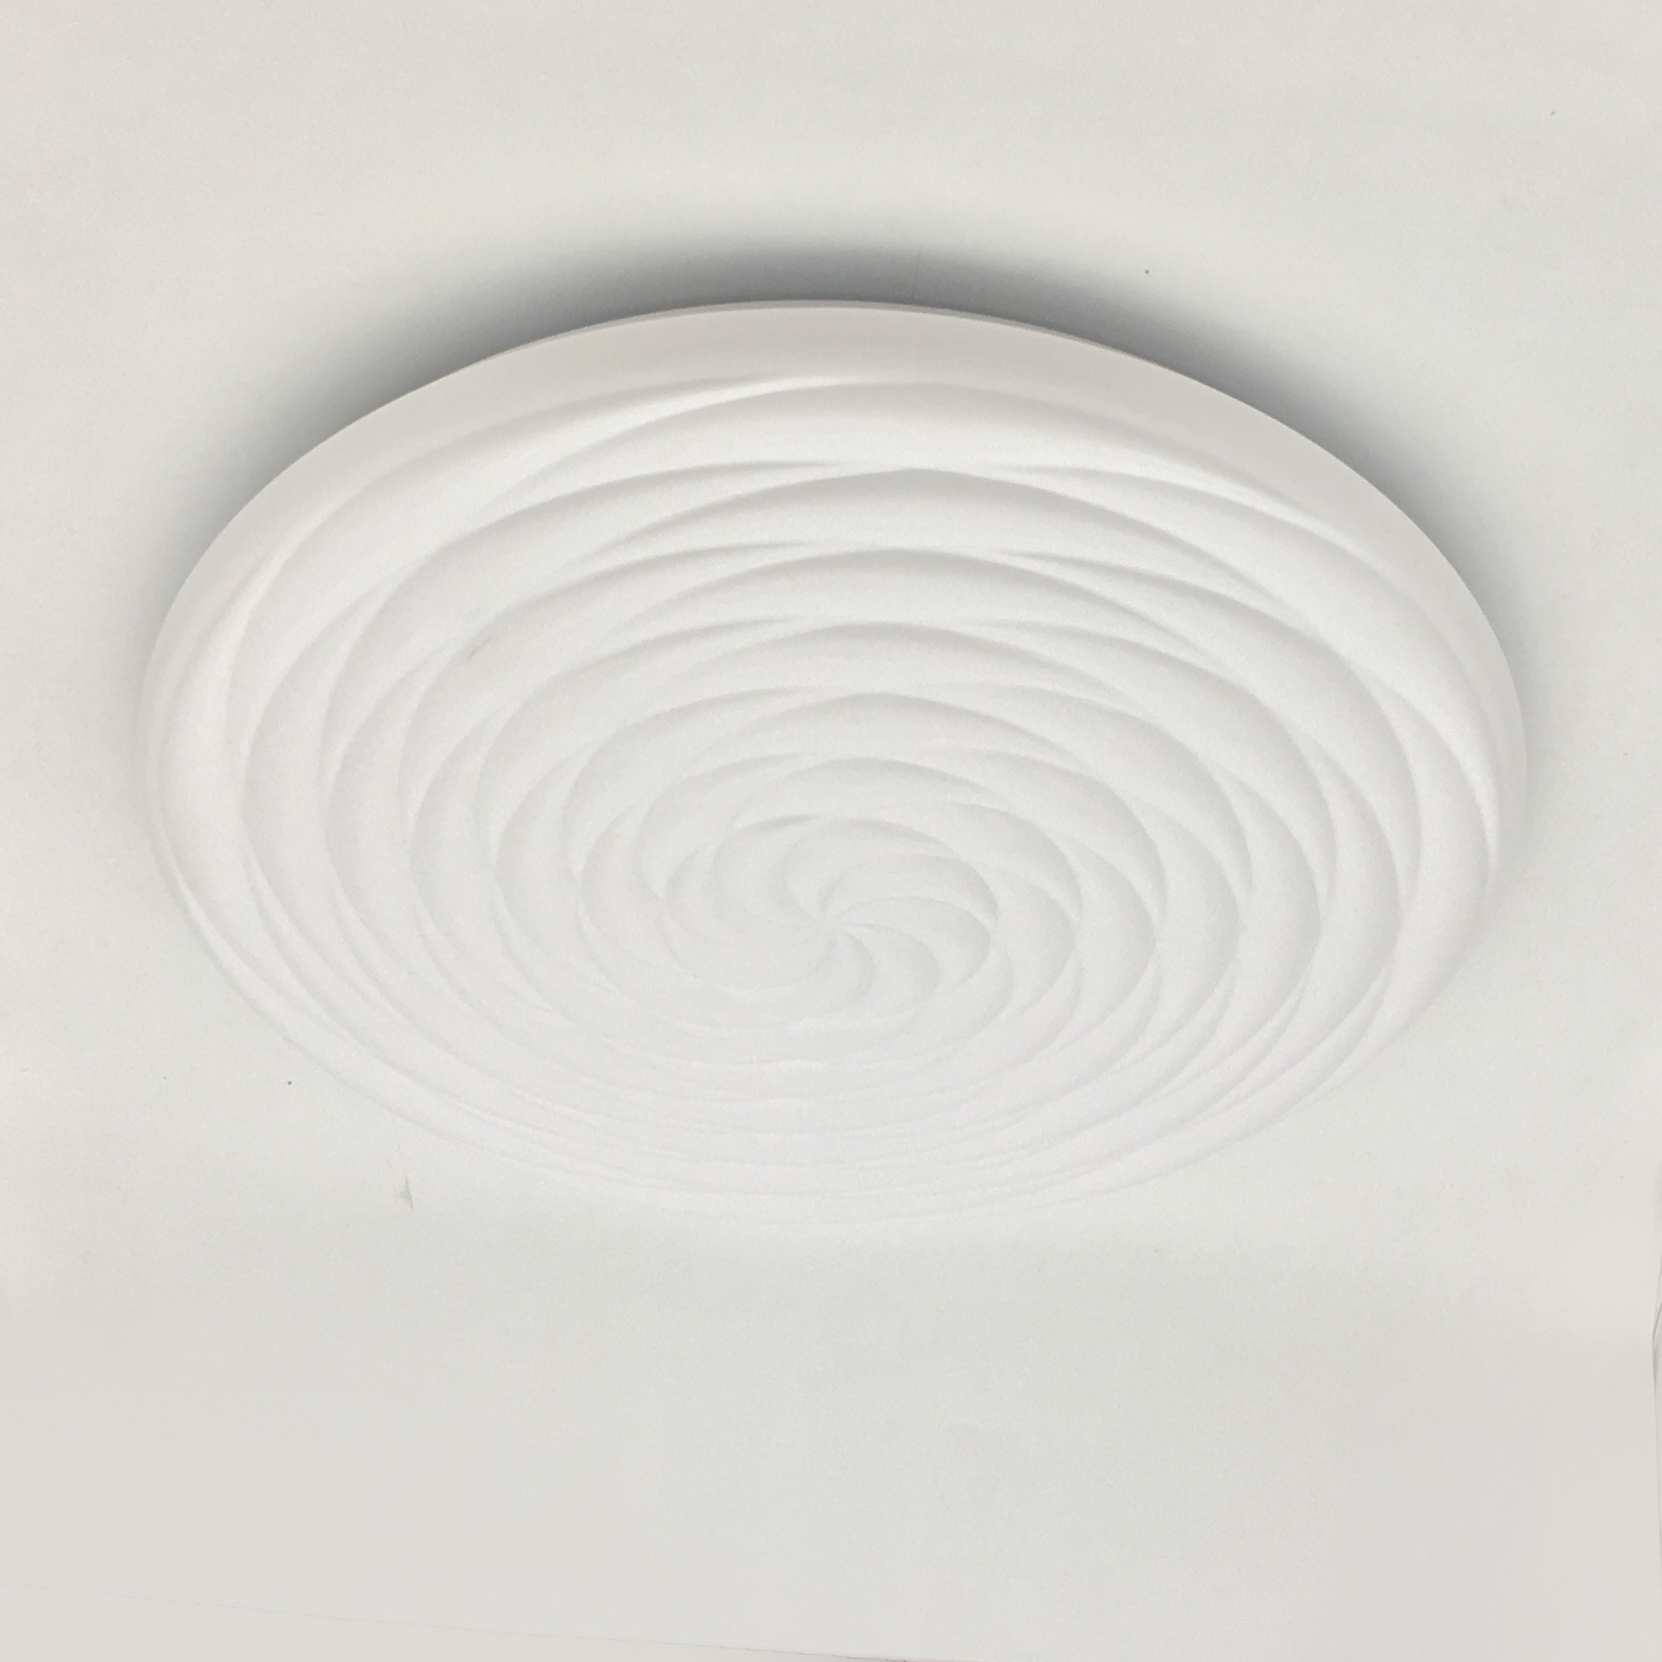 Soffitto decorativo acrilico dimmerabile moderno da ristoran